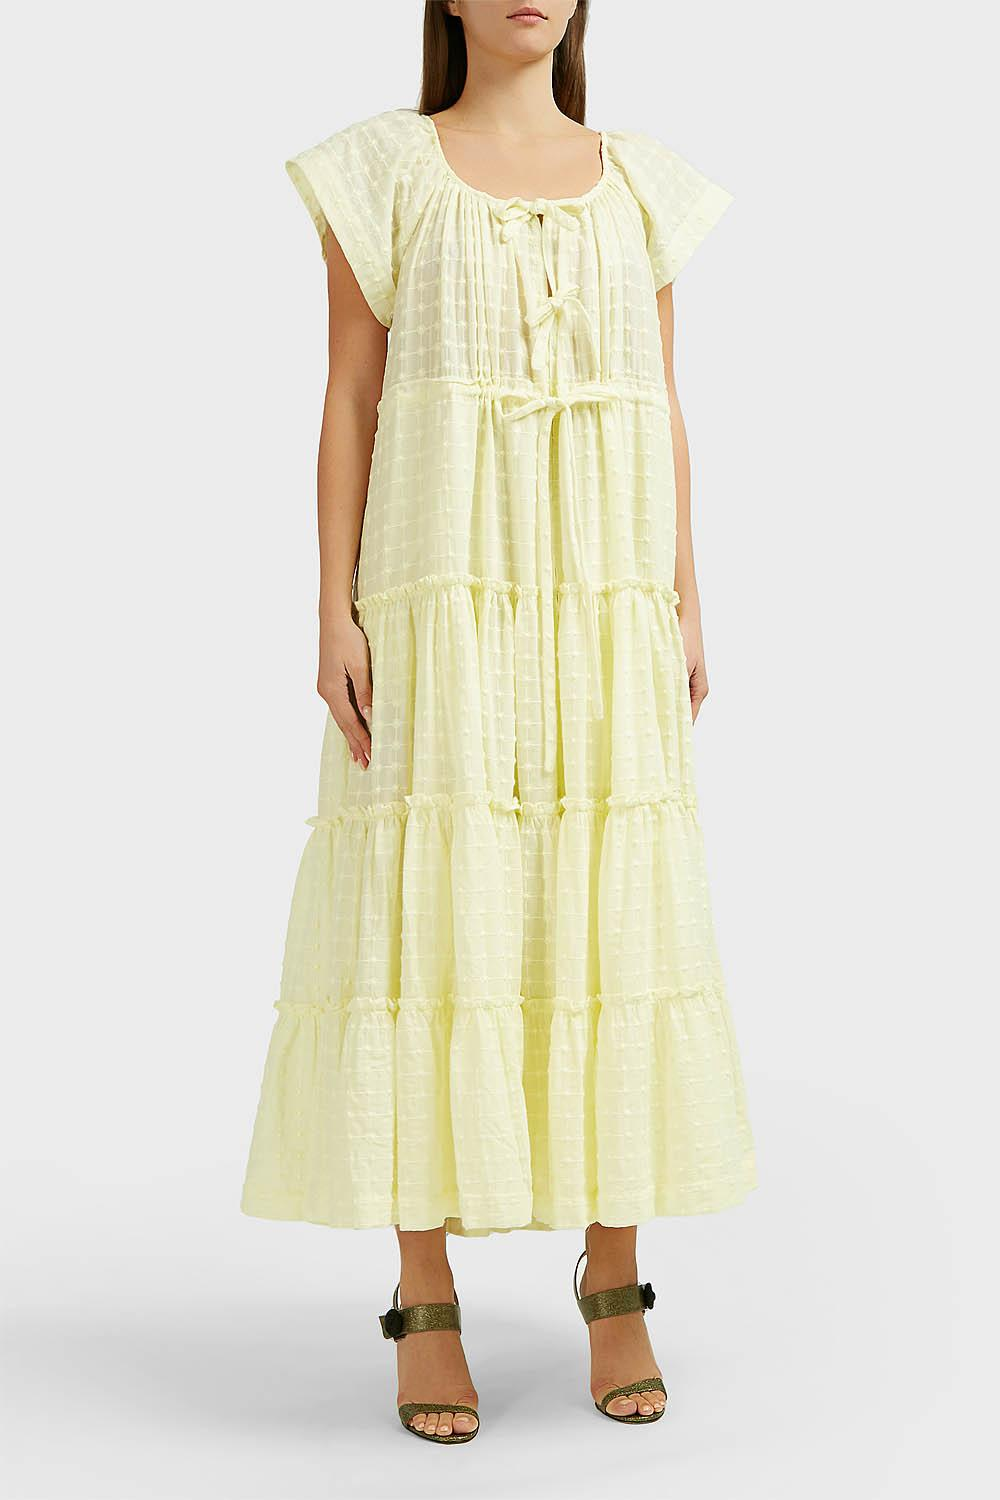 089230c306b Lyst - Innika Choo Alotta Gud Cotton Midi Dress in Yellow - Save 1%